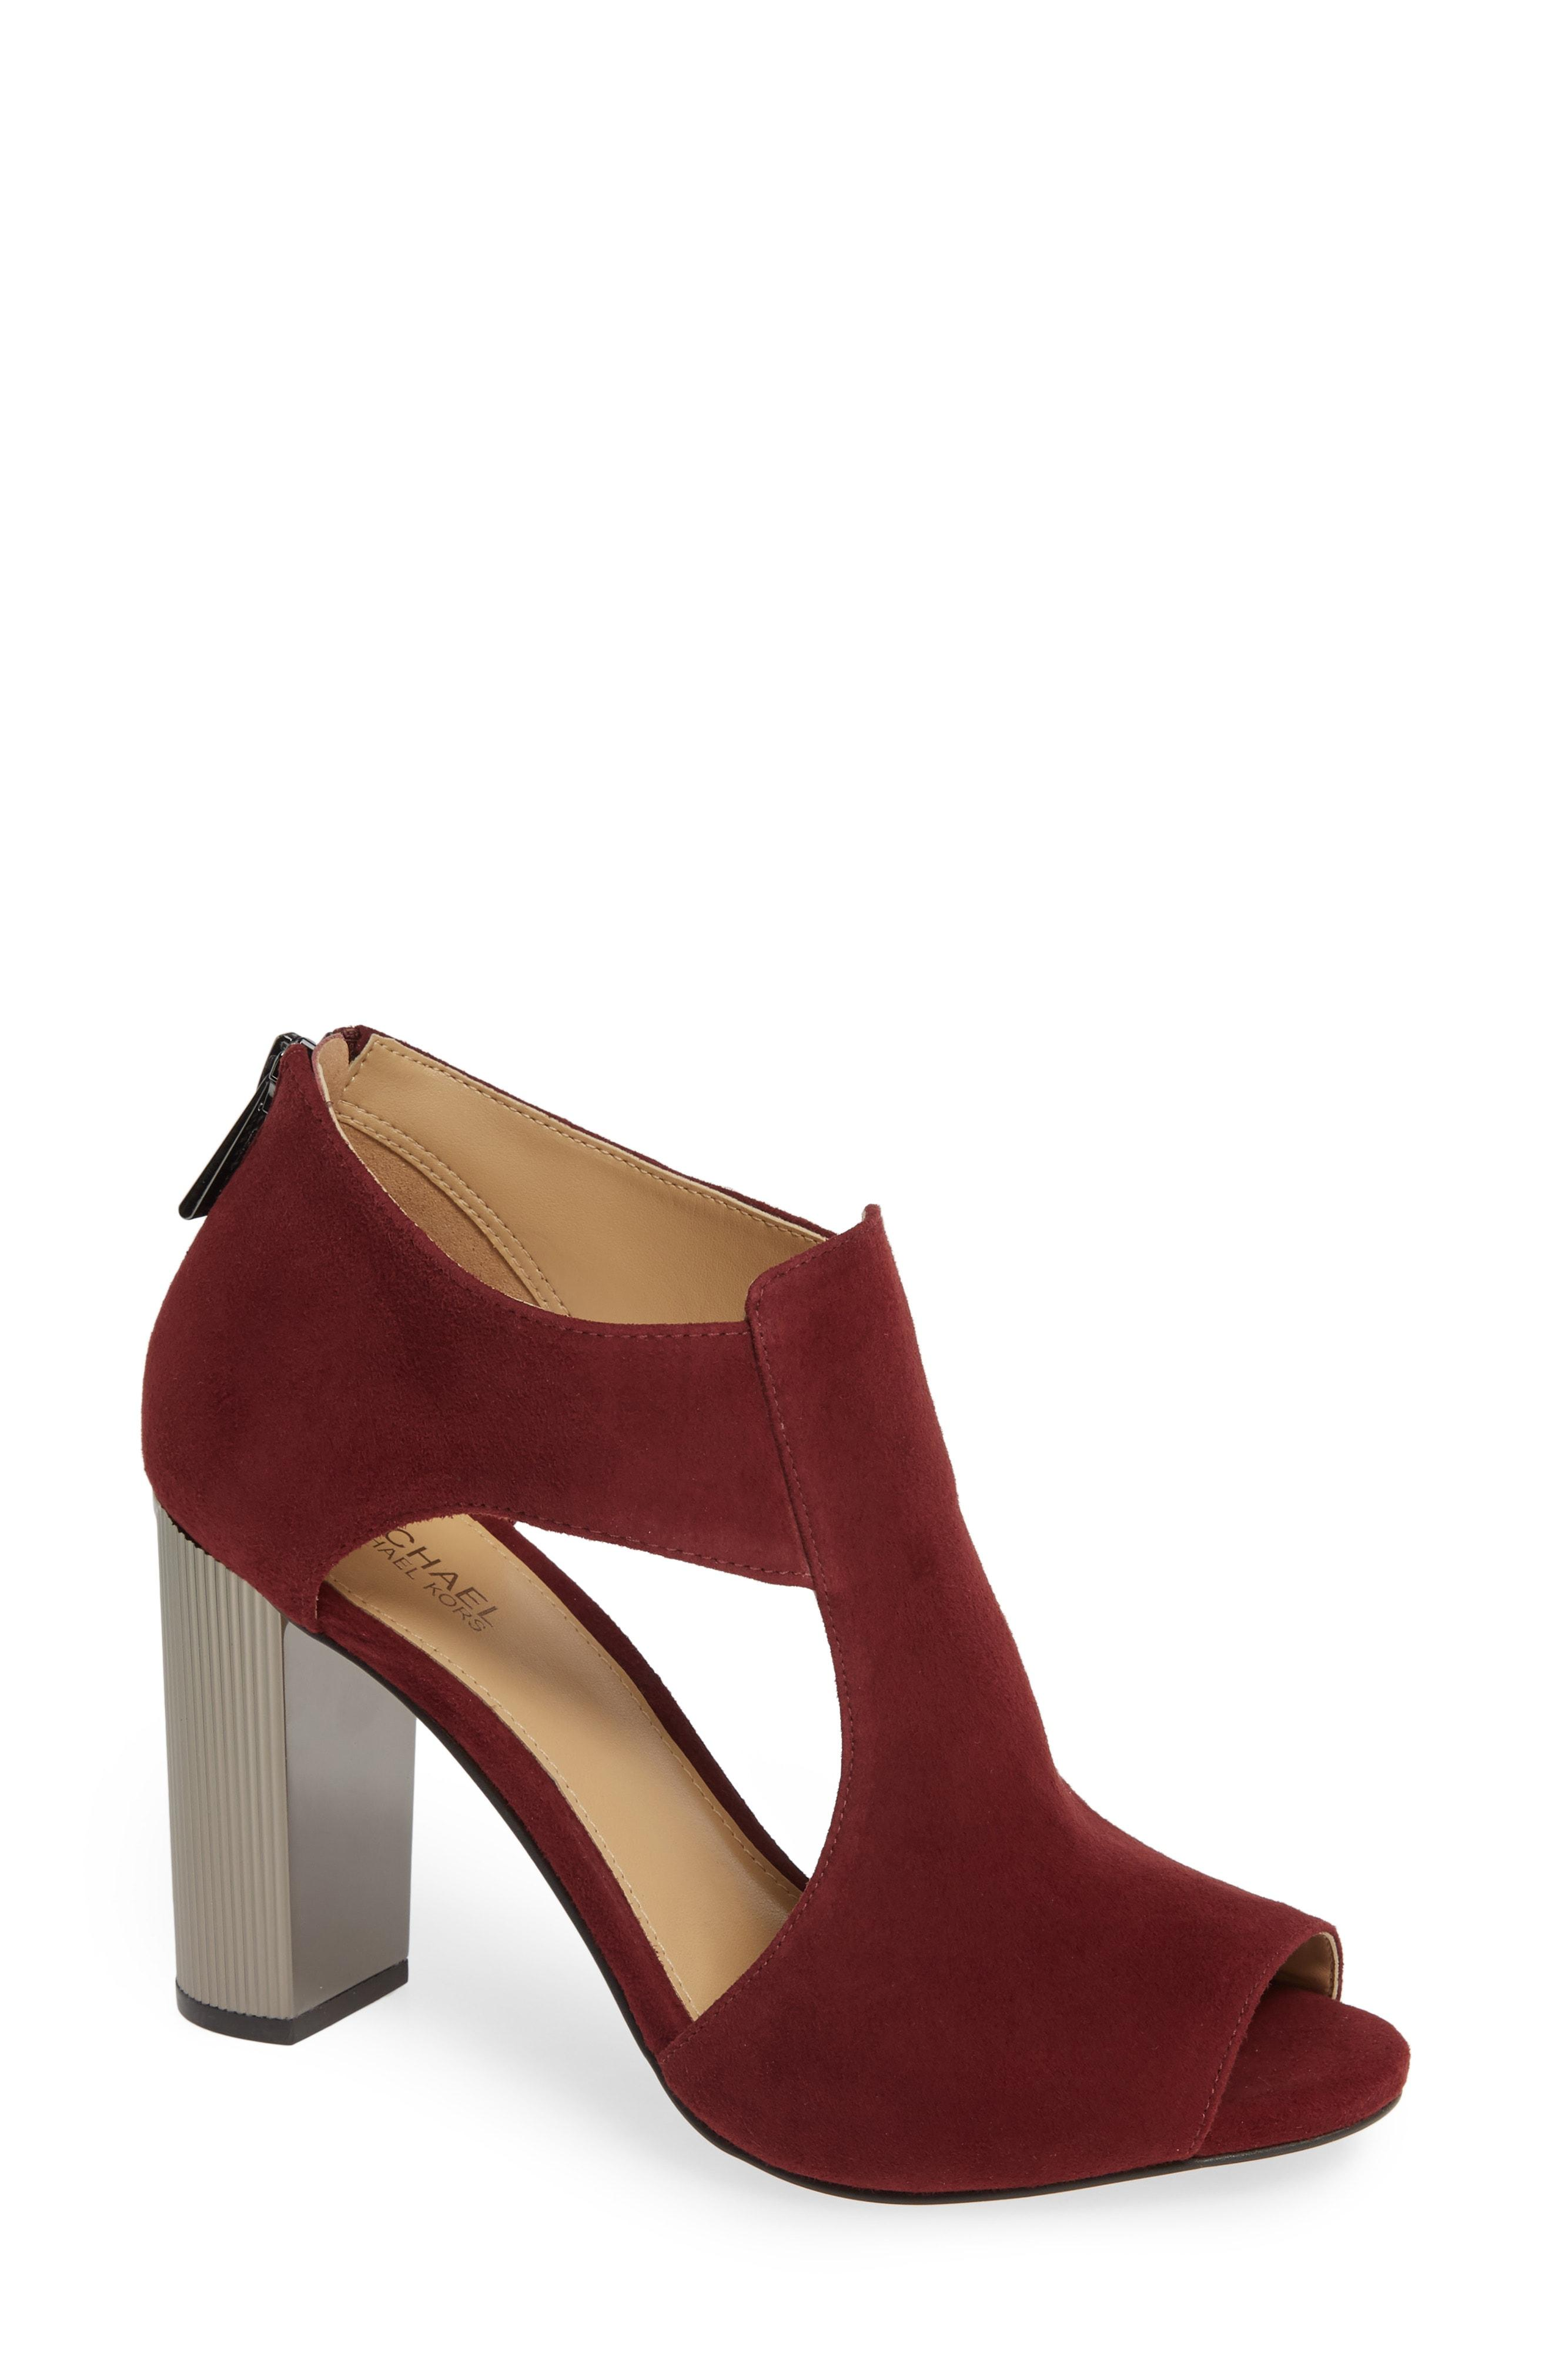 217a648525 Lyst - MICHAEL Michael Kors Paloma Open Toe Sandal in Natural